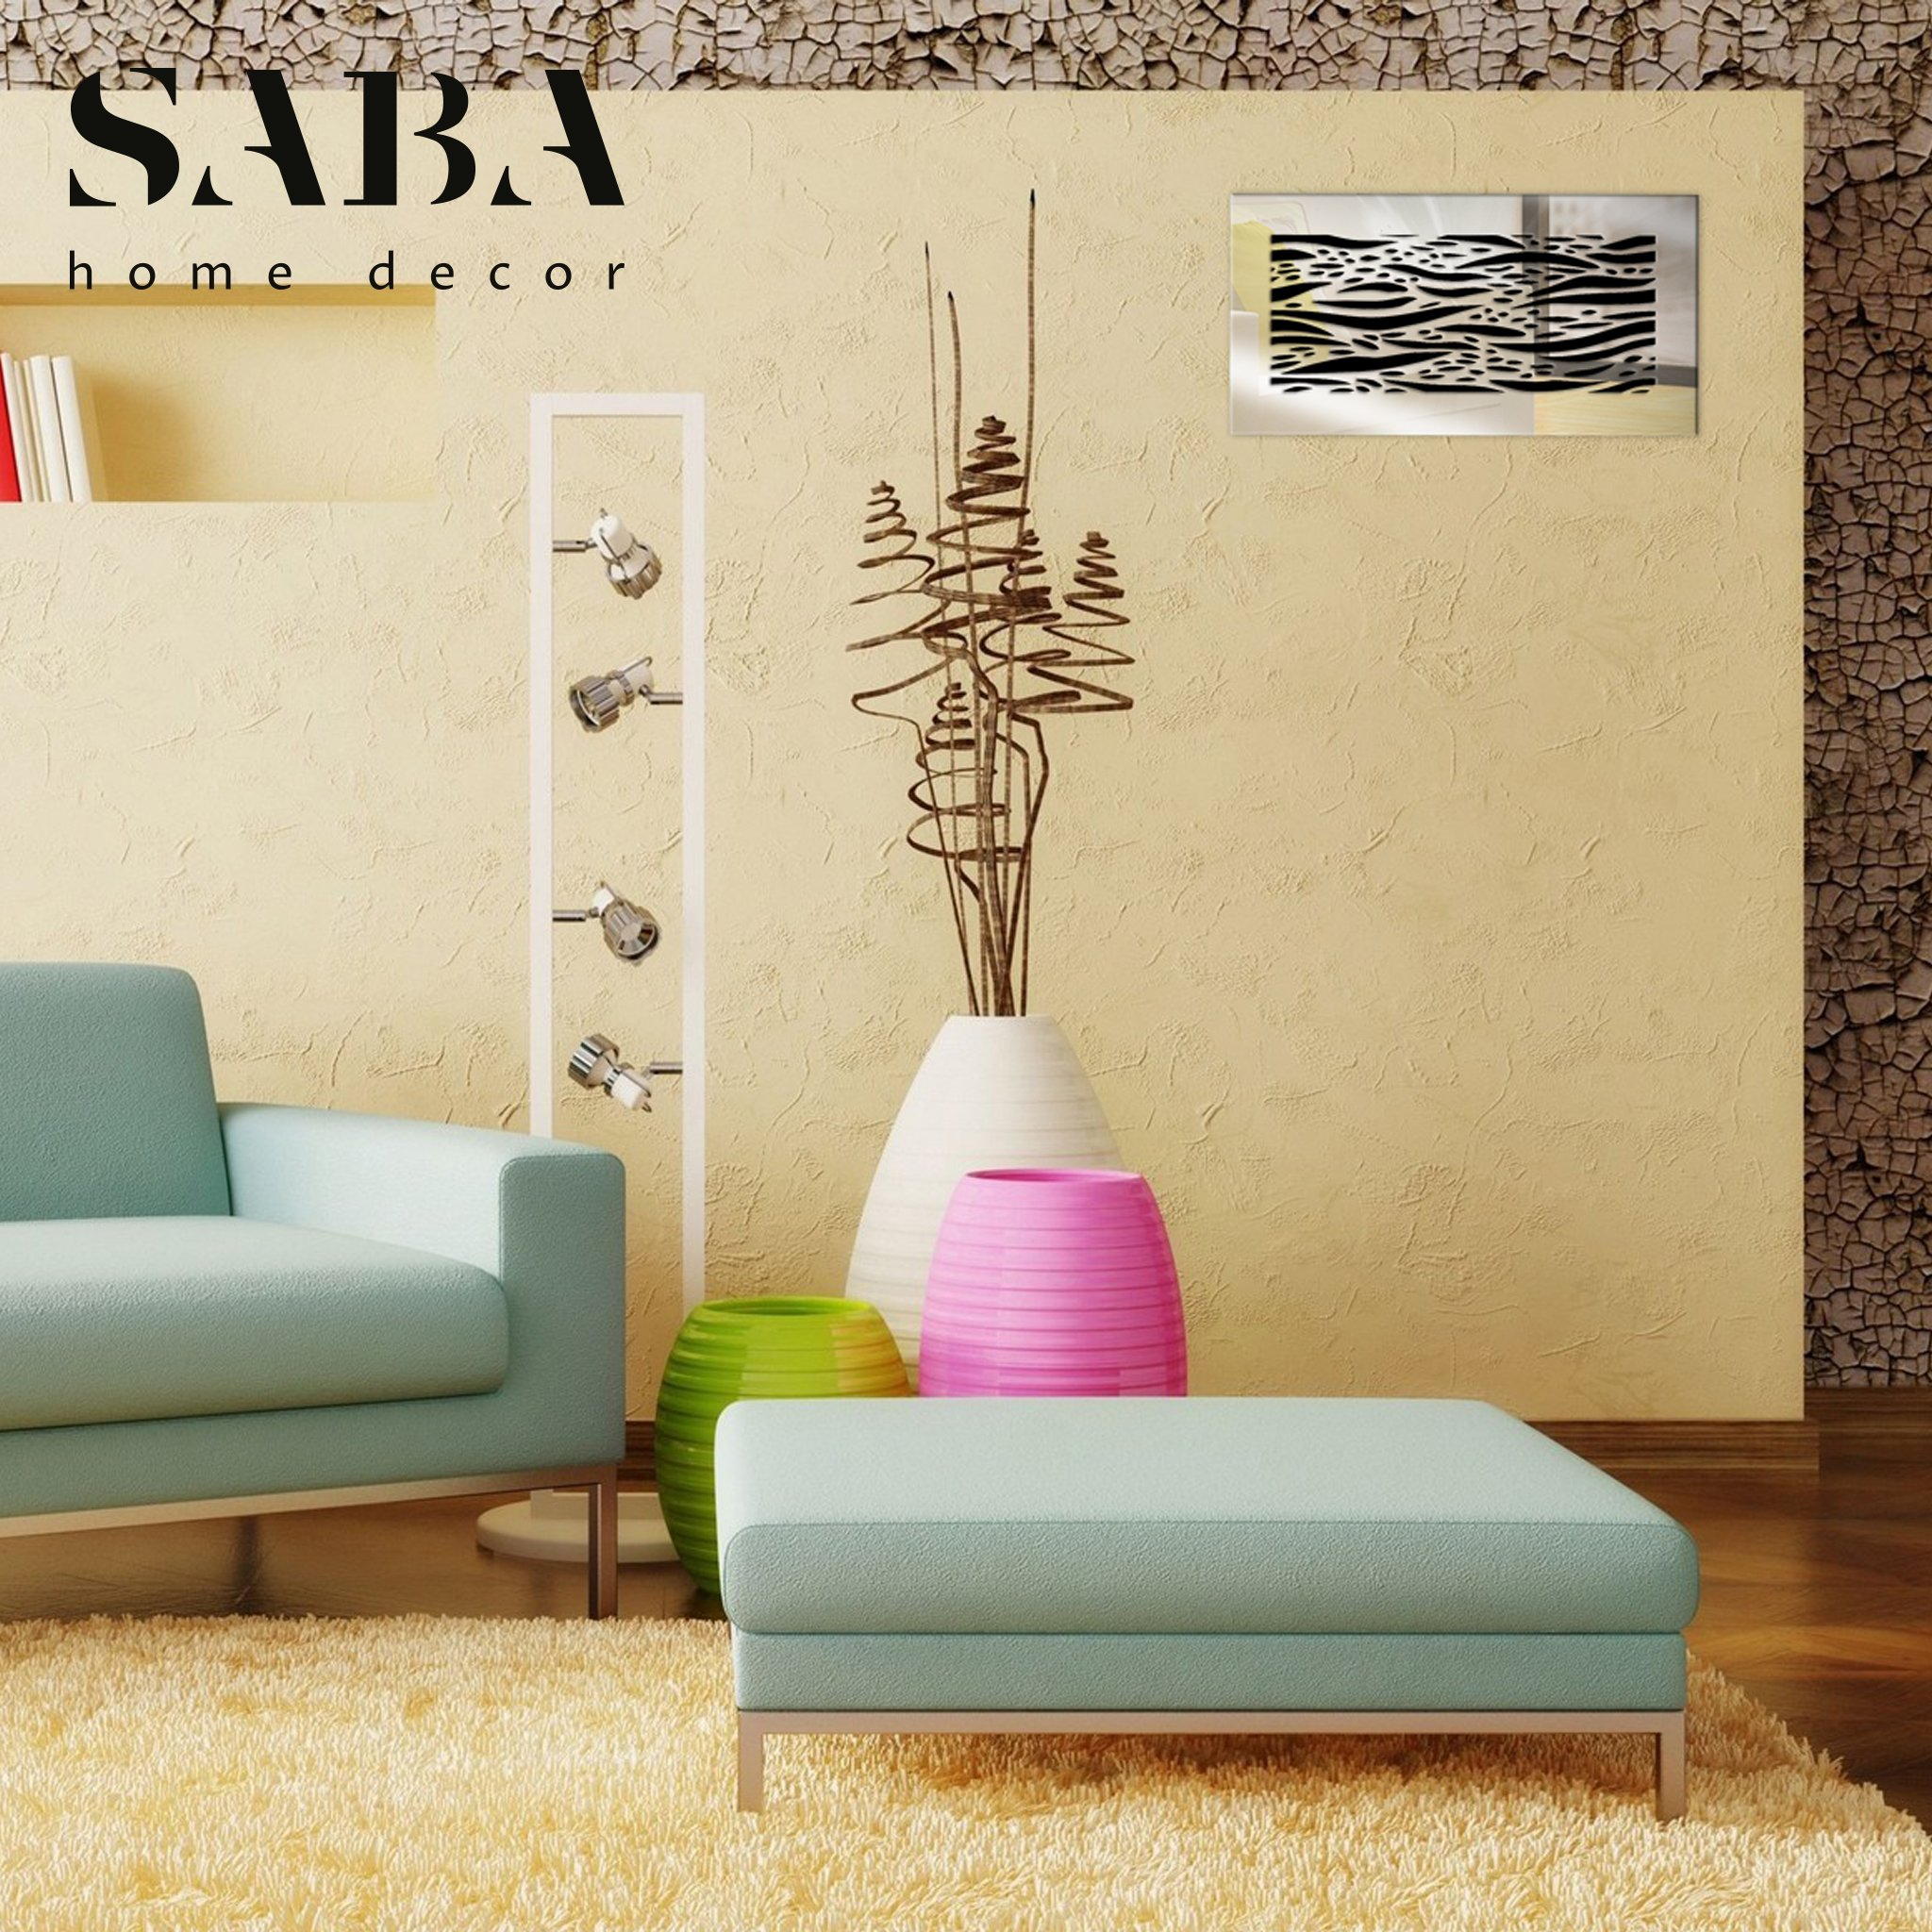 Saba Air Vent Covers Register - Acrylic Fiberglass Grille 10'' x 6'' Duct Opening (12'' x 8'' Overall) Mirror Finish Decorative Cover for Walls and Ceilings (not for Floor use), Waves by SABA Home Decor (Image #4)